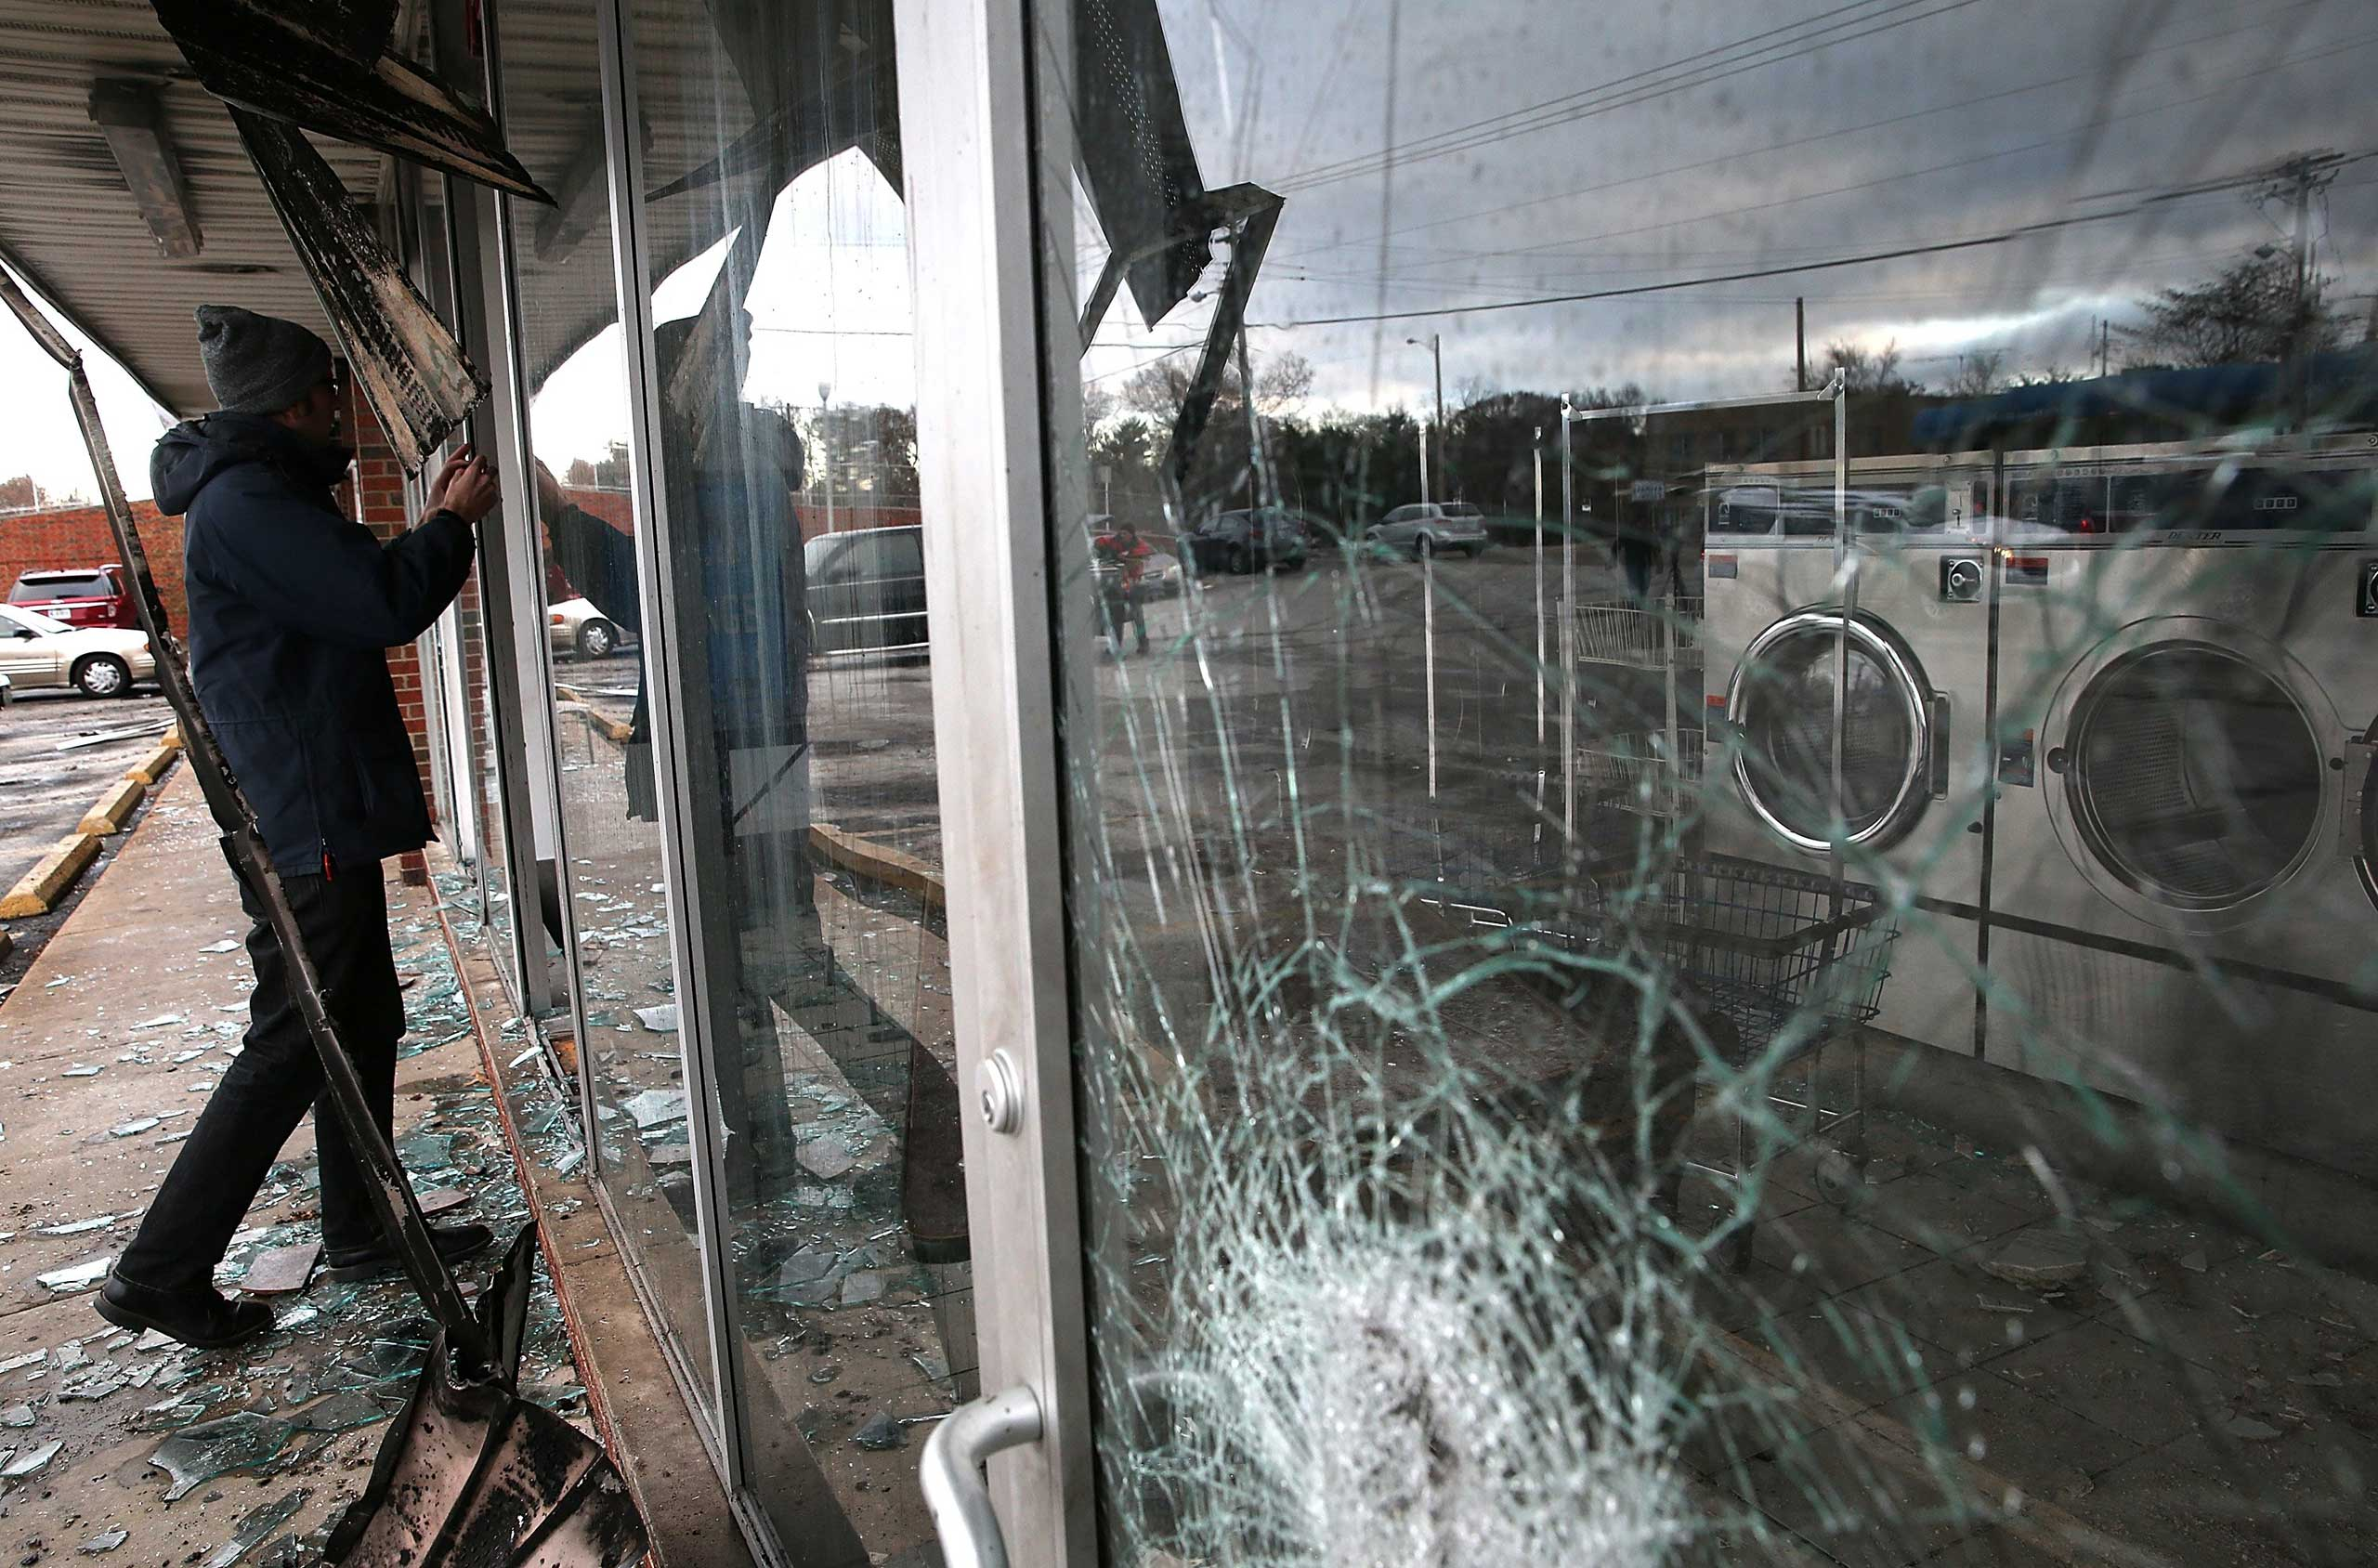 A reporter looks through the window of a laundromat that was damaged during a demonstration in Dellwood, Mo. on Nov. 25, 2014.